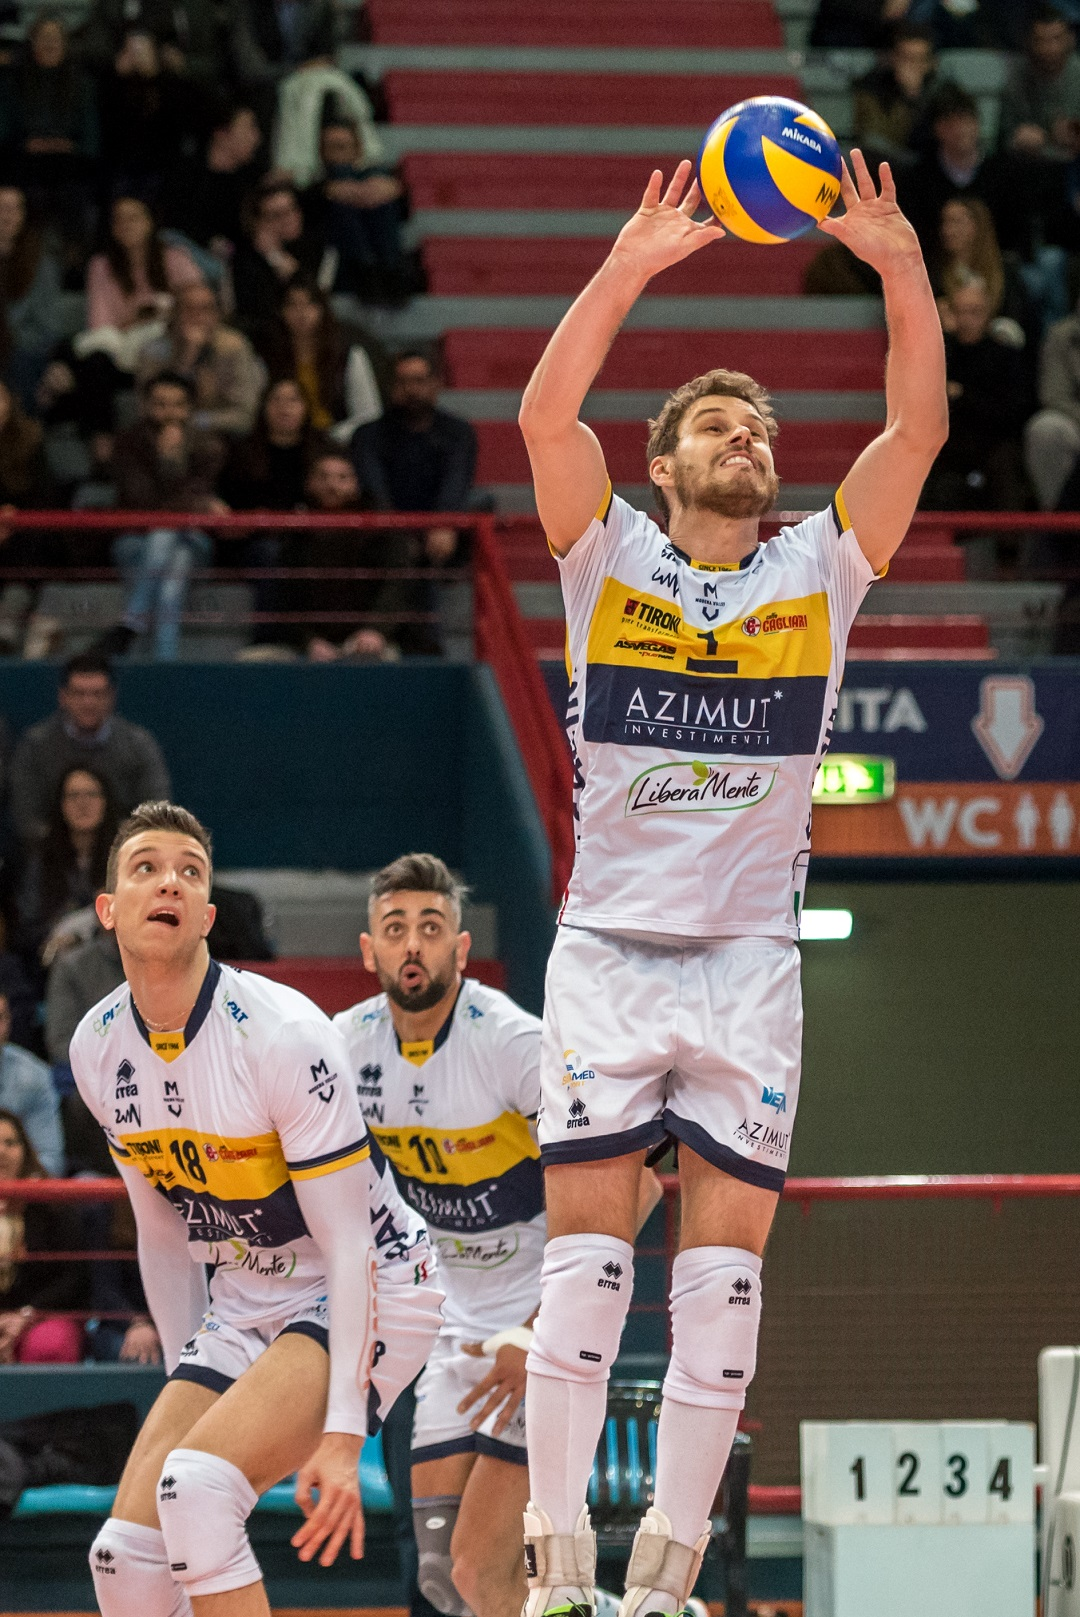 Modena volley l azimut modena volley si impone 3 0 a for Casa modena volley